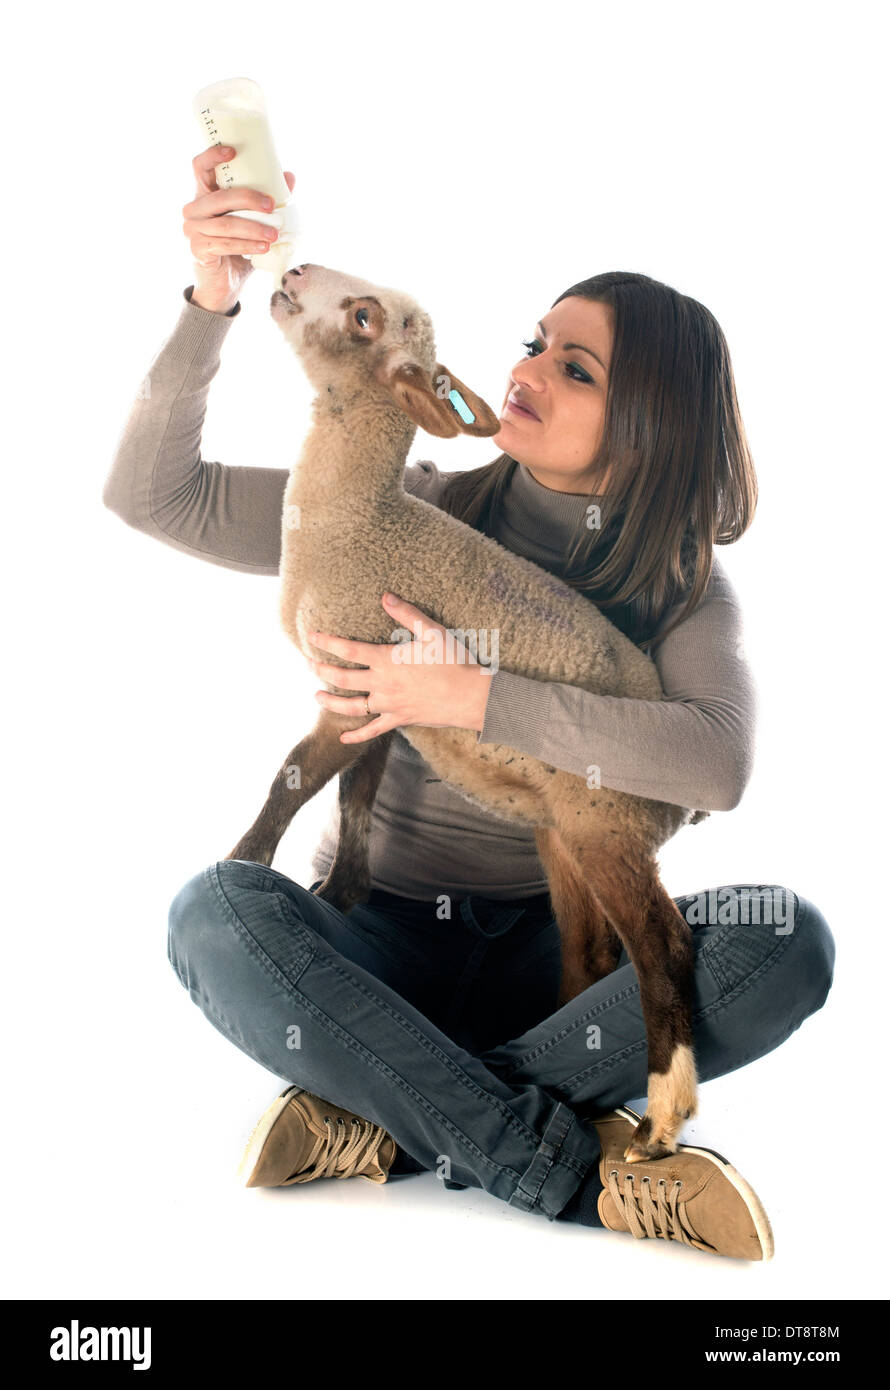 young lamb sucking a bottle feed with woman in front of white background - Stock Image